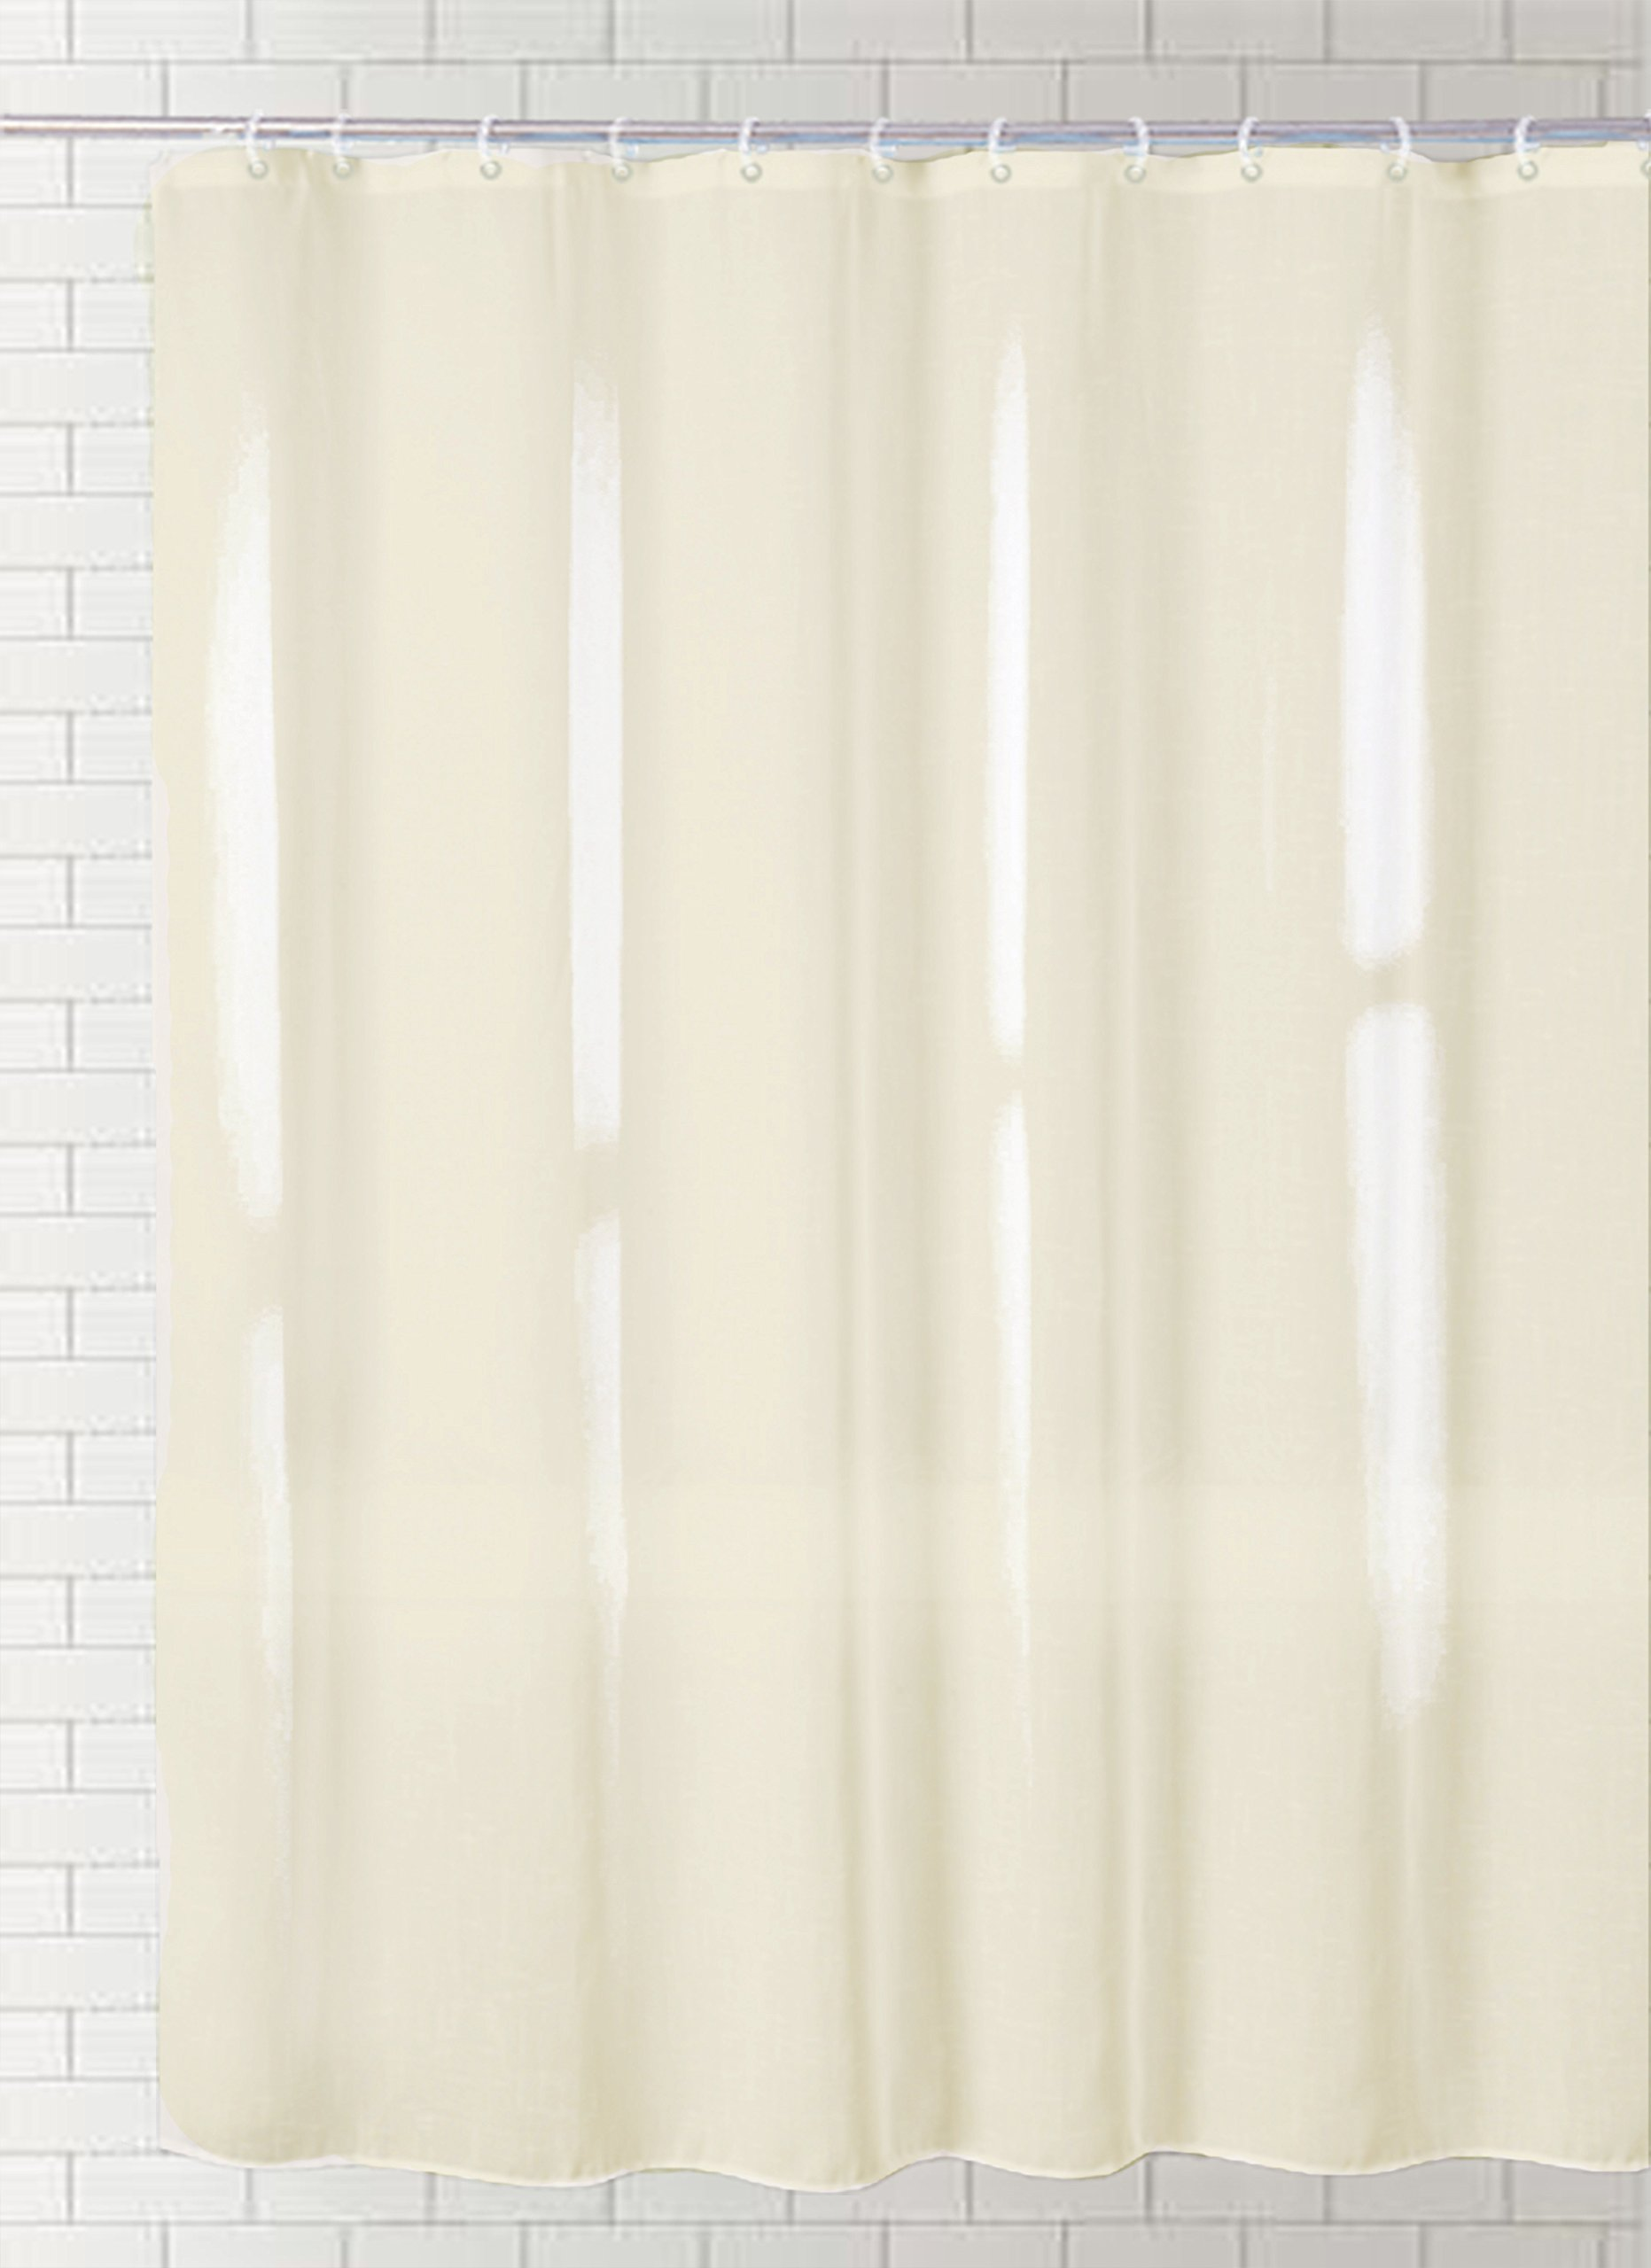 J&M Home Fashions Polyester/PEVA Shower Curtain 70x72, Antibacterial and Mildew Resistant, Waterproof/Water-Repellent to Resist Germs, Bacteria & Mold for Everyday Use-Cream